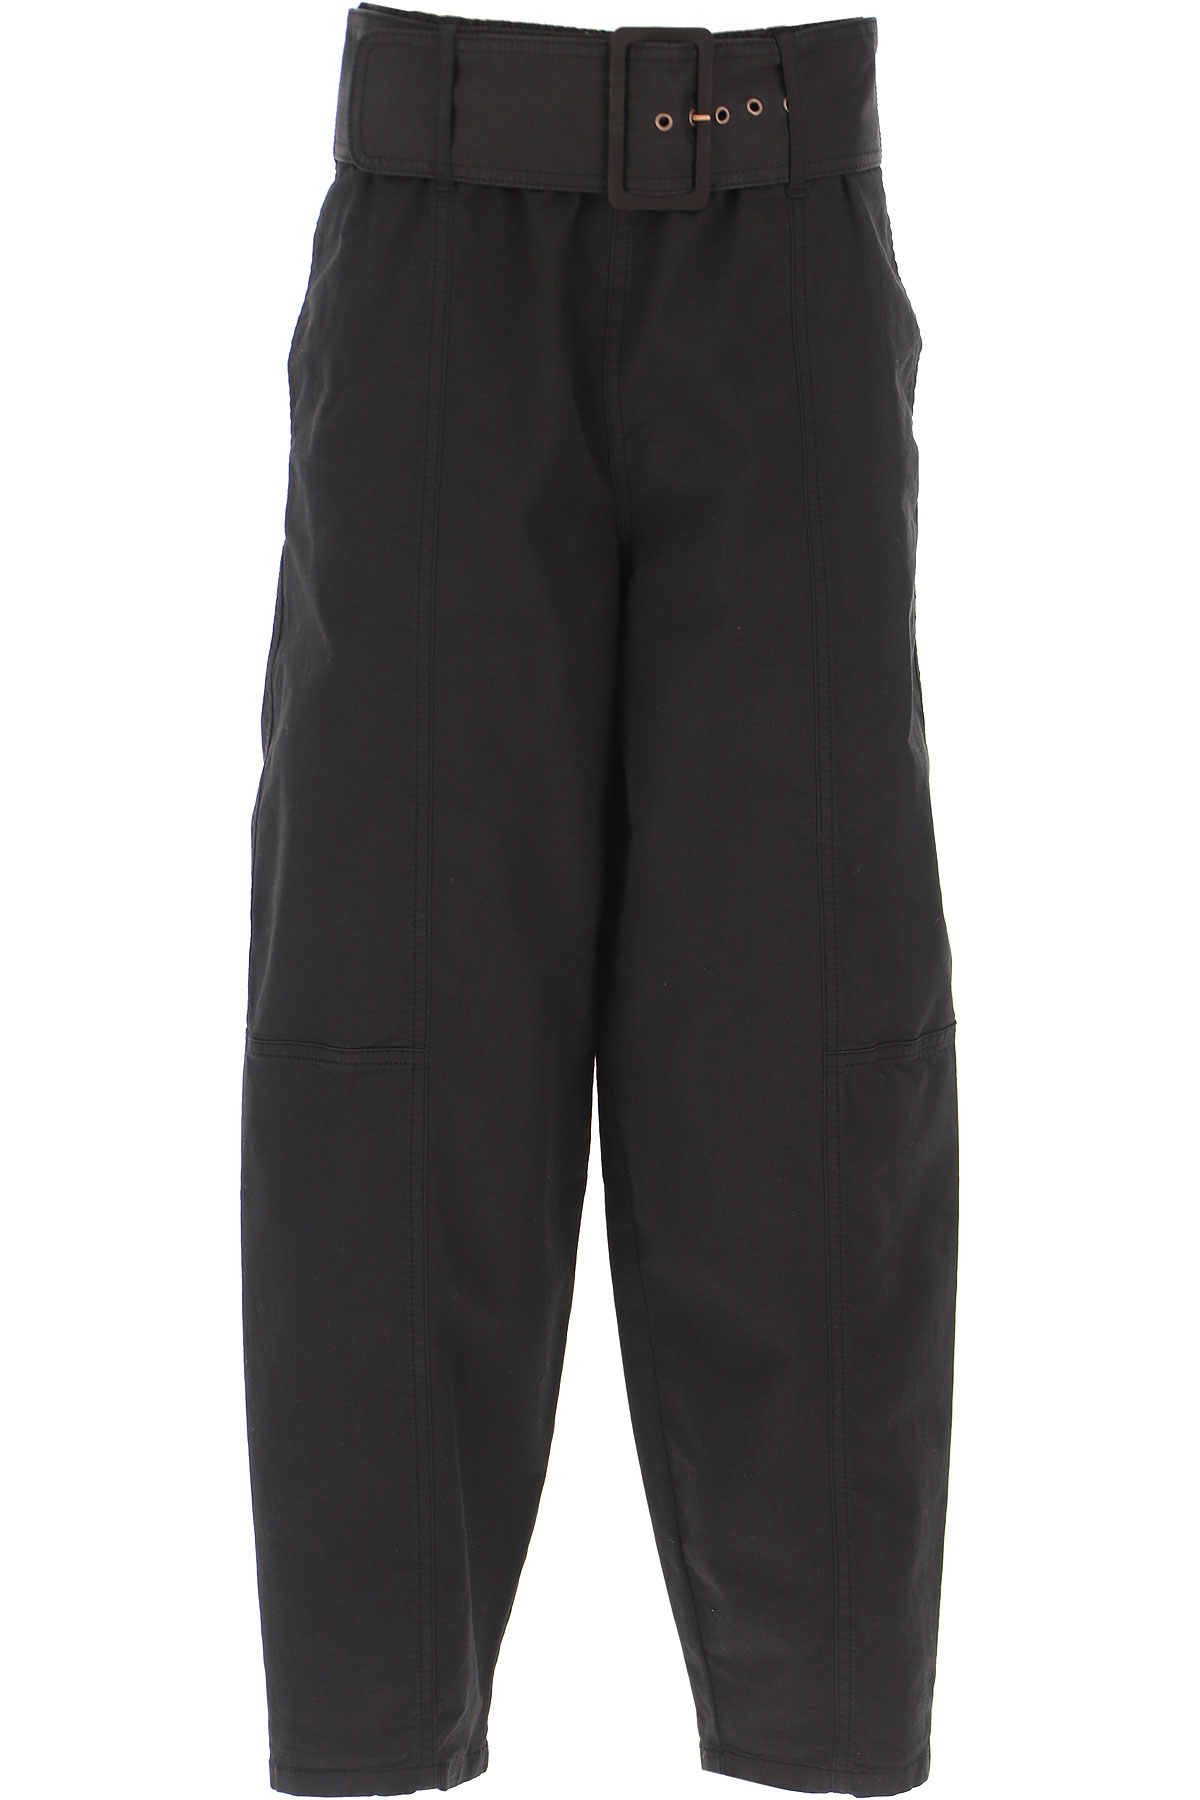 See By Chloe Pants for Women, Black, Cotton, 2019, 24